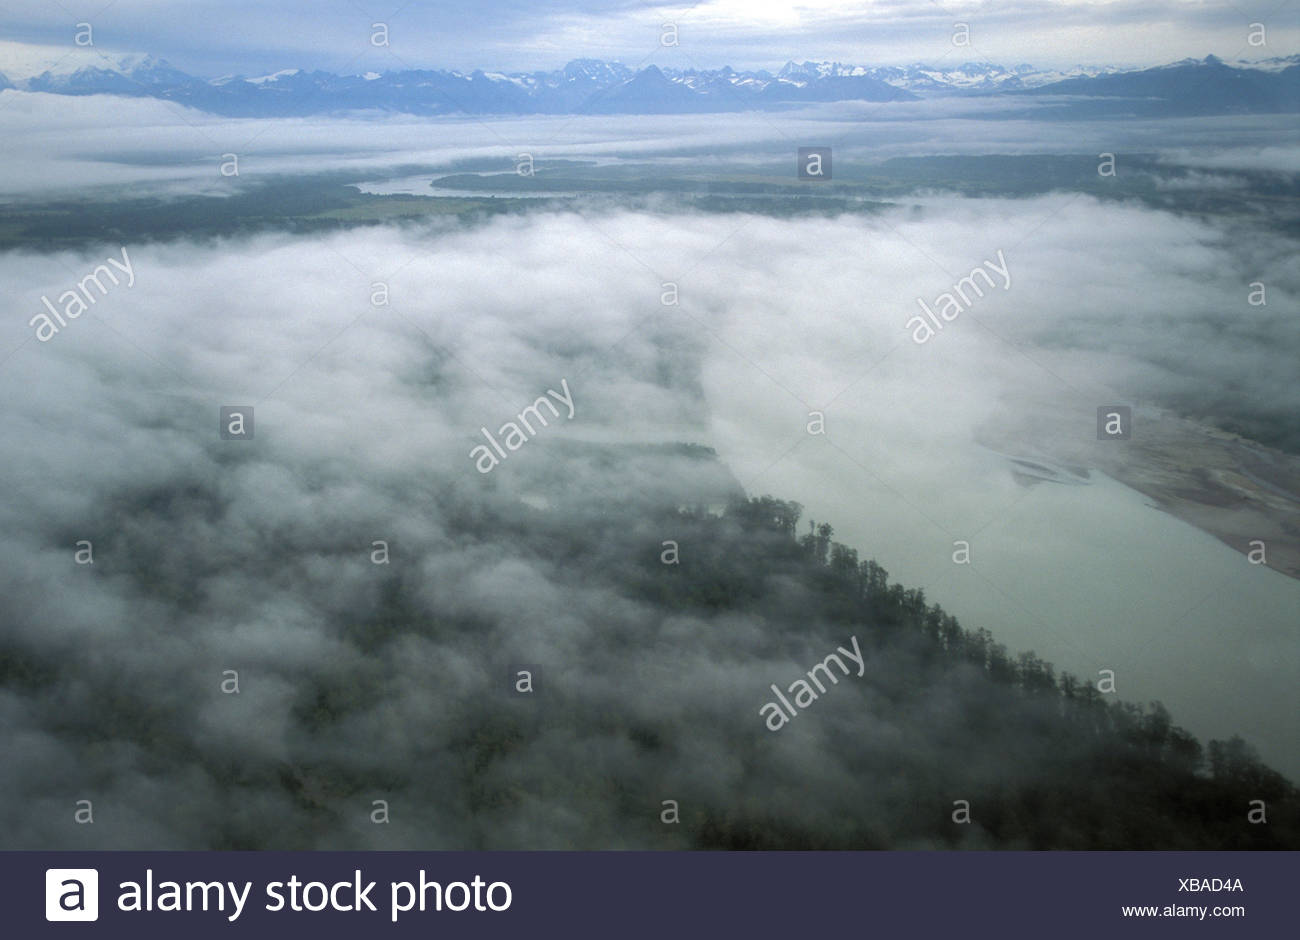 Coastal Plain, Cook Inlet, Chigmit Mountains, Aleutian Range, Alaska, USA, fog, clouds, above clouds, lush forest, stormy, view, - Stock Image